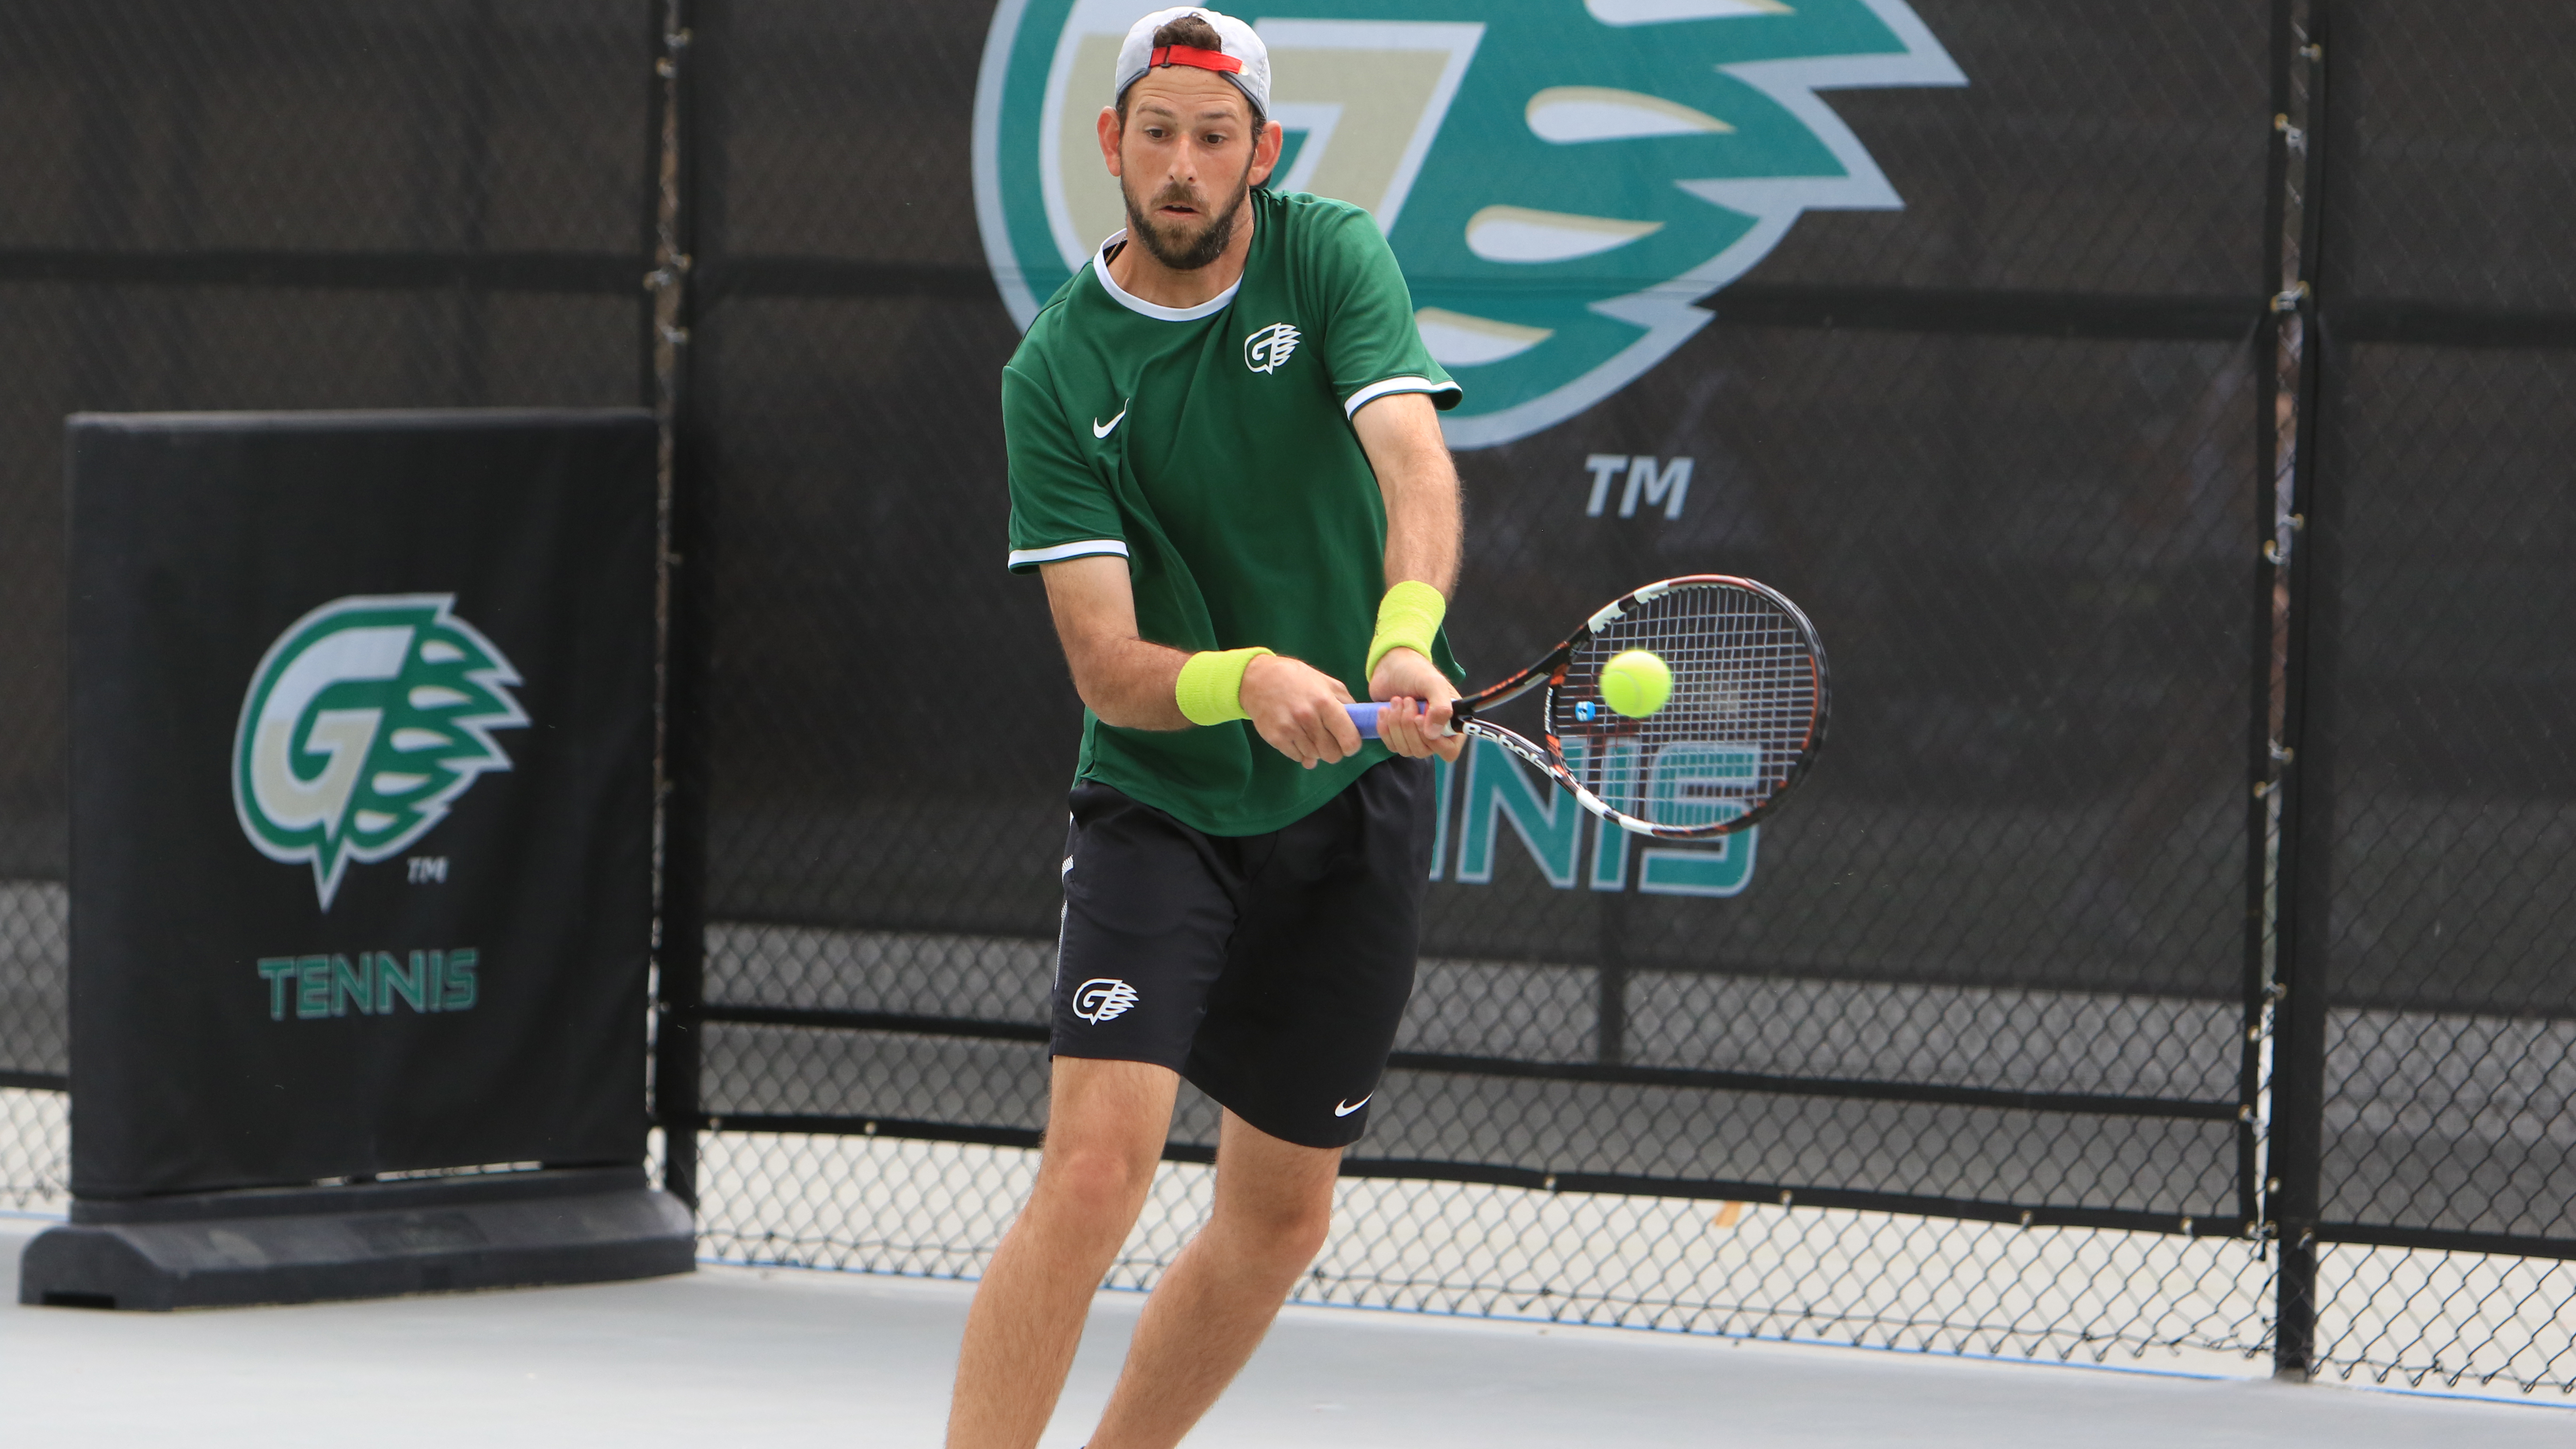 2018 NAIA Men's Tennis Coaches' Top 25 Poll No. 5 ? (April 10)